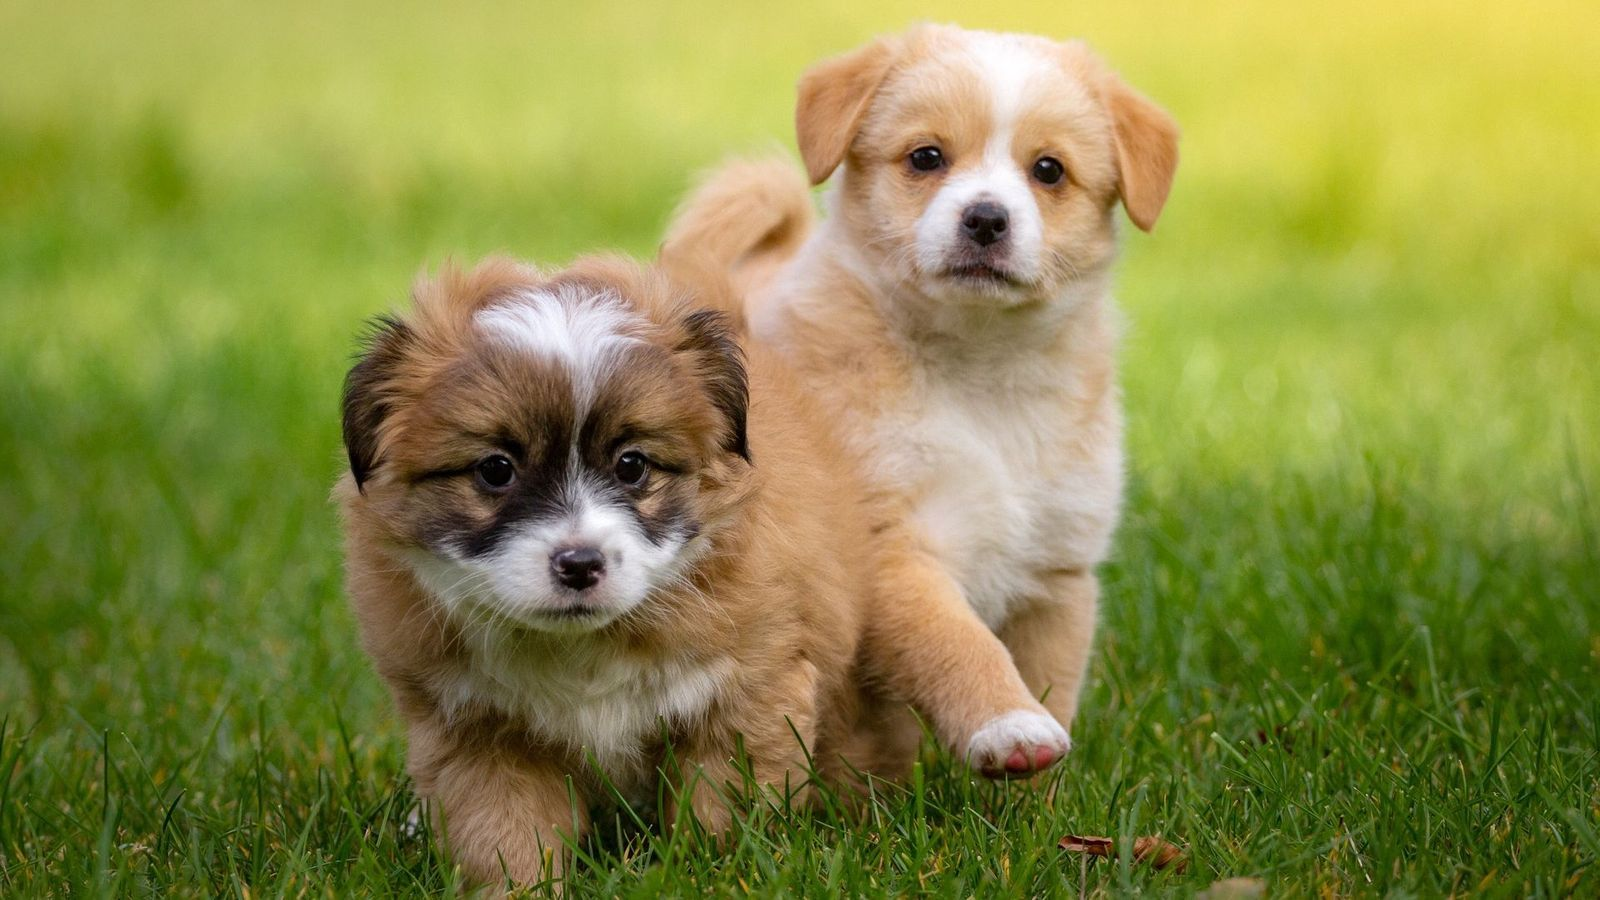 Cute Puppies Wallpaper For Mobile Phone Tablet Desktop Computer And Other Devices Hd And 4k Wallpapers In 2020 Cute Puppy Wallpaper Puppy Wallpaper Cute Puppies